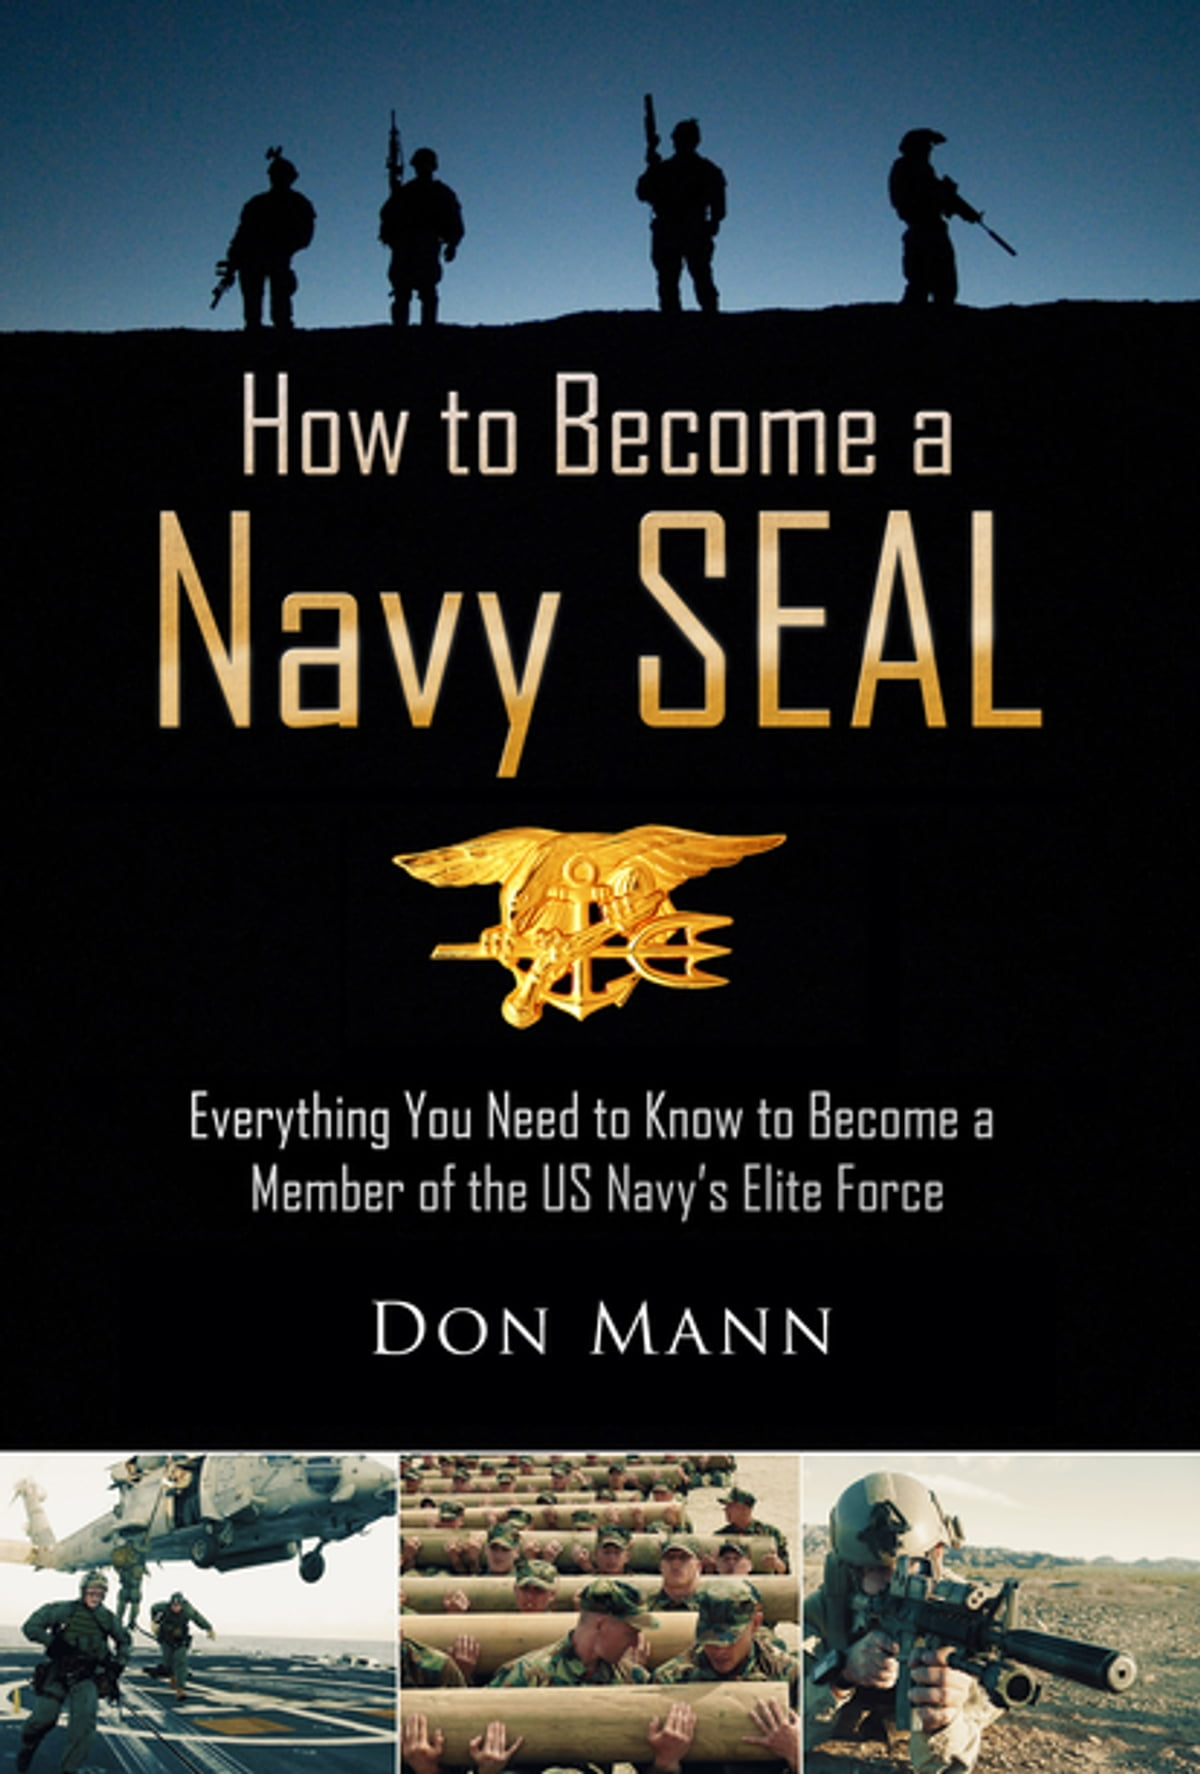 How to Become a Navy SEAL eBook by Don Mann - 9781628734874 | Rakuten Kobo